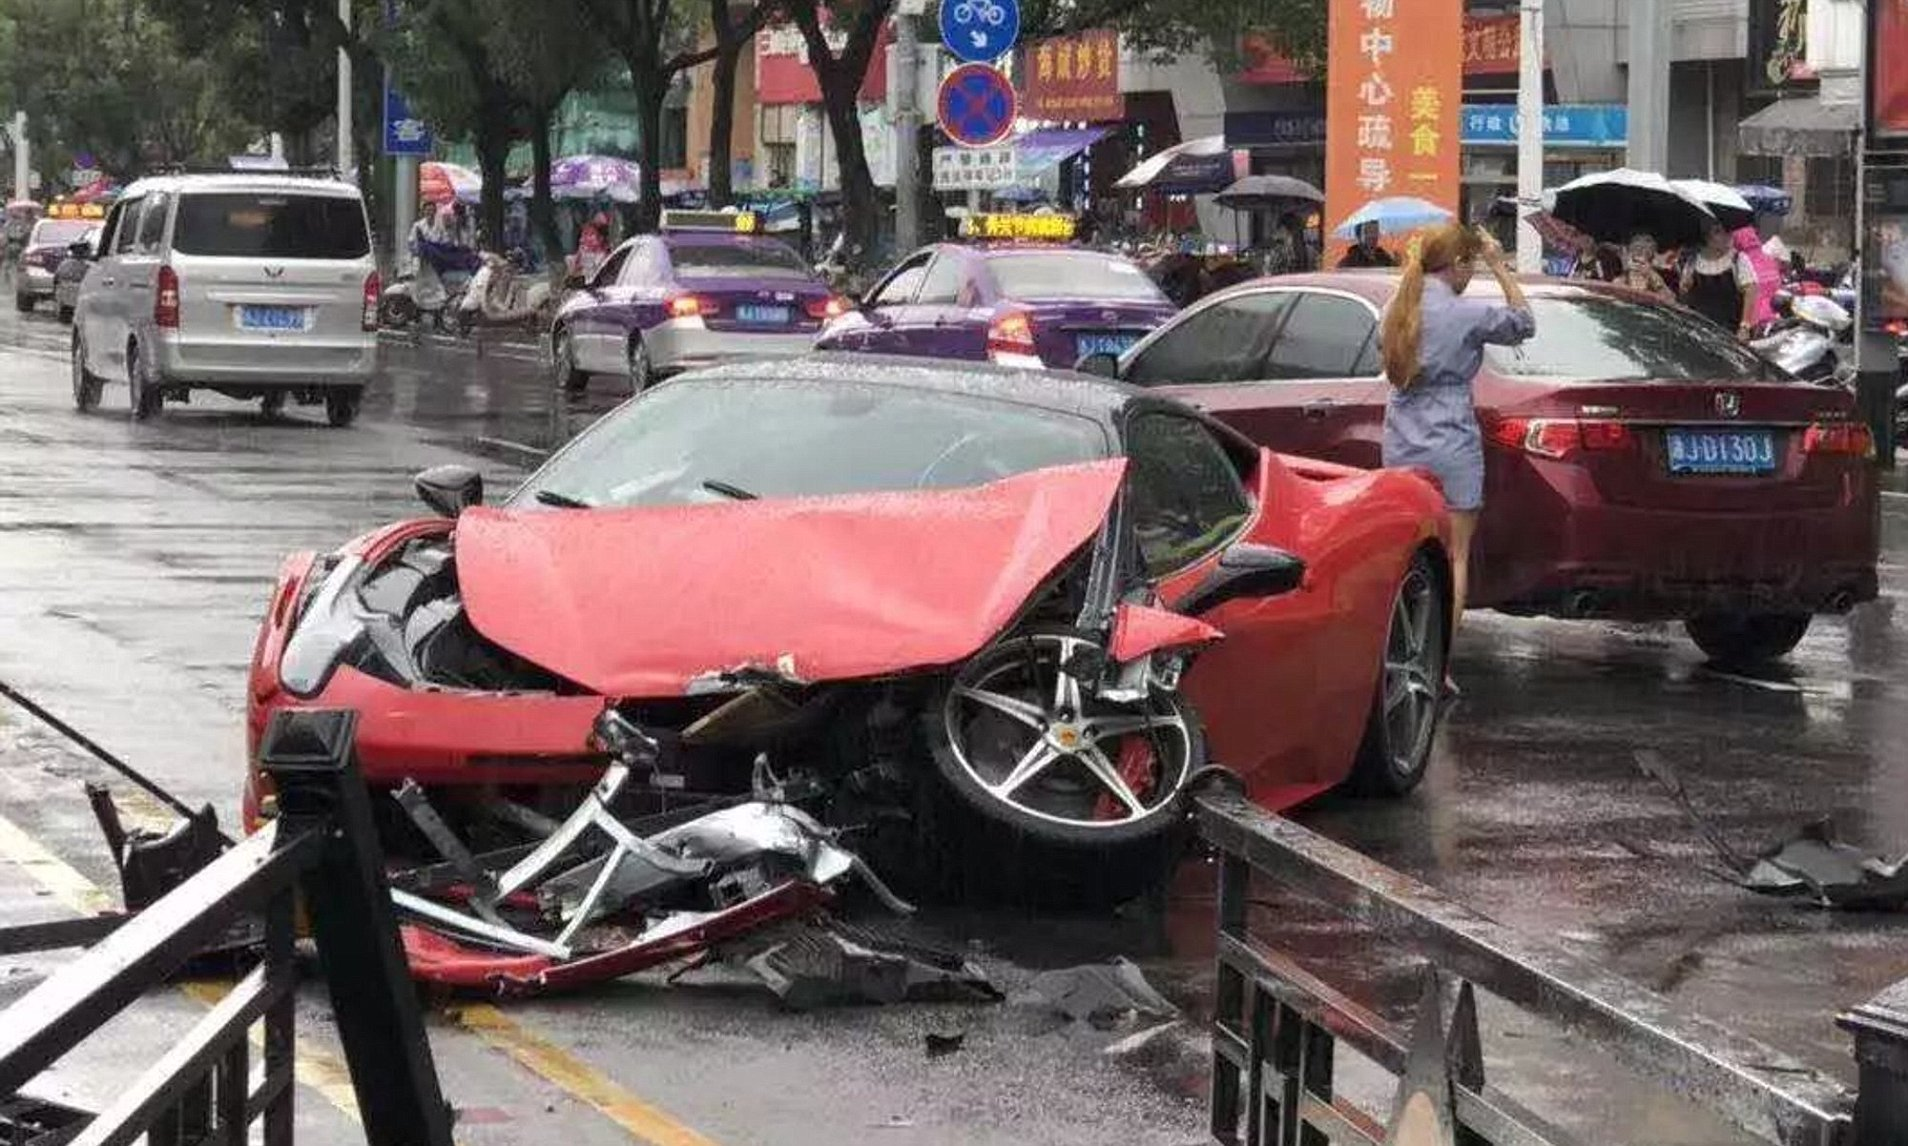 Video – Woman in China completely wrecks a Ferrari 458 minutes after renting it